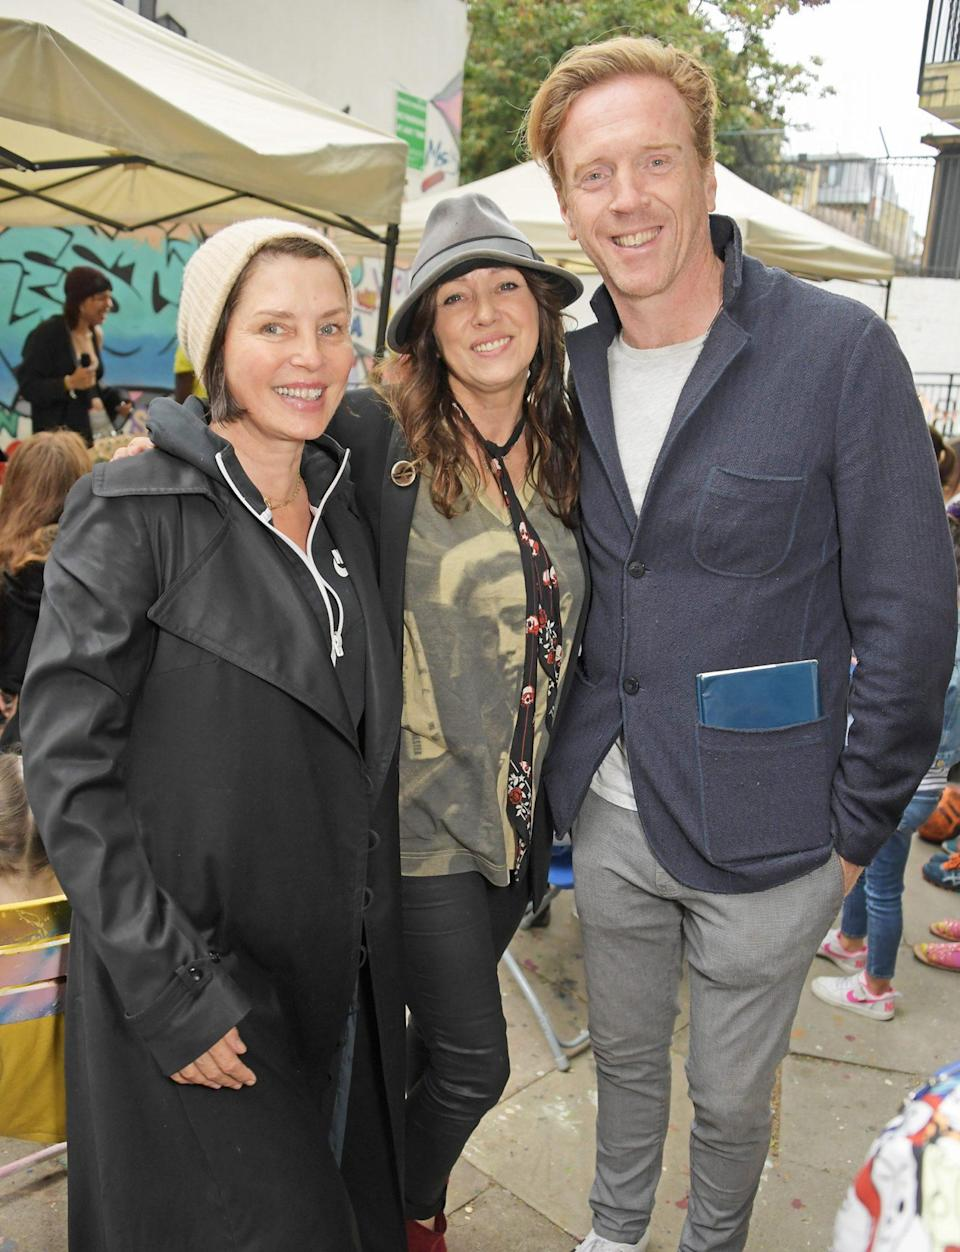 <p>Sadie Frost, Debbi Clark and Damian Lewis attend a performance of the Sir Hubert Von Herkomer Arts Foundation's production of <em>A Brave New World</em>, in memory of patron Helen McCrory, on Aug. 30 in London.</p>